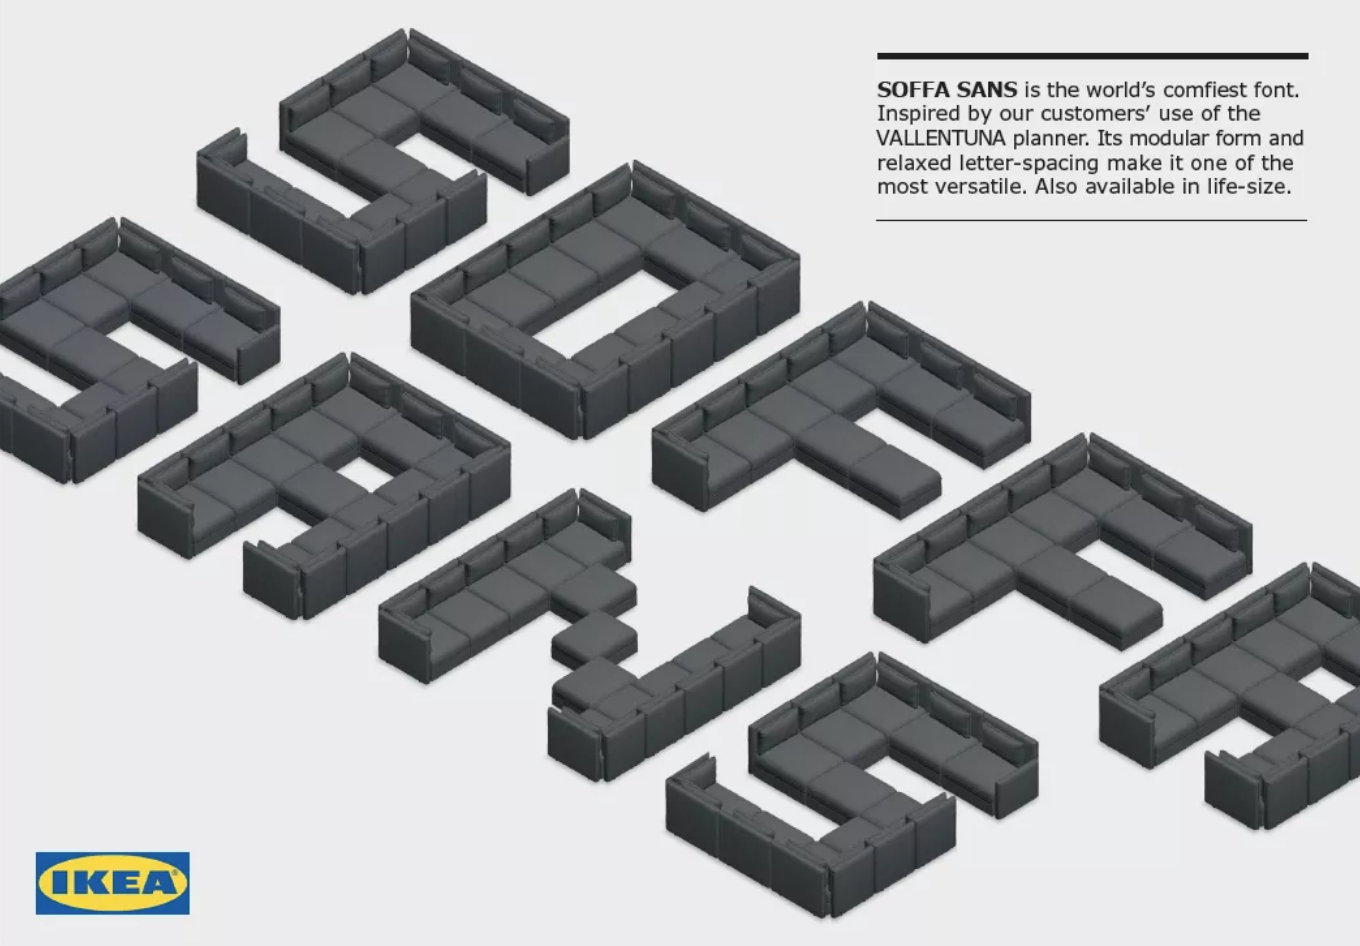 Rendering of font made from sofas